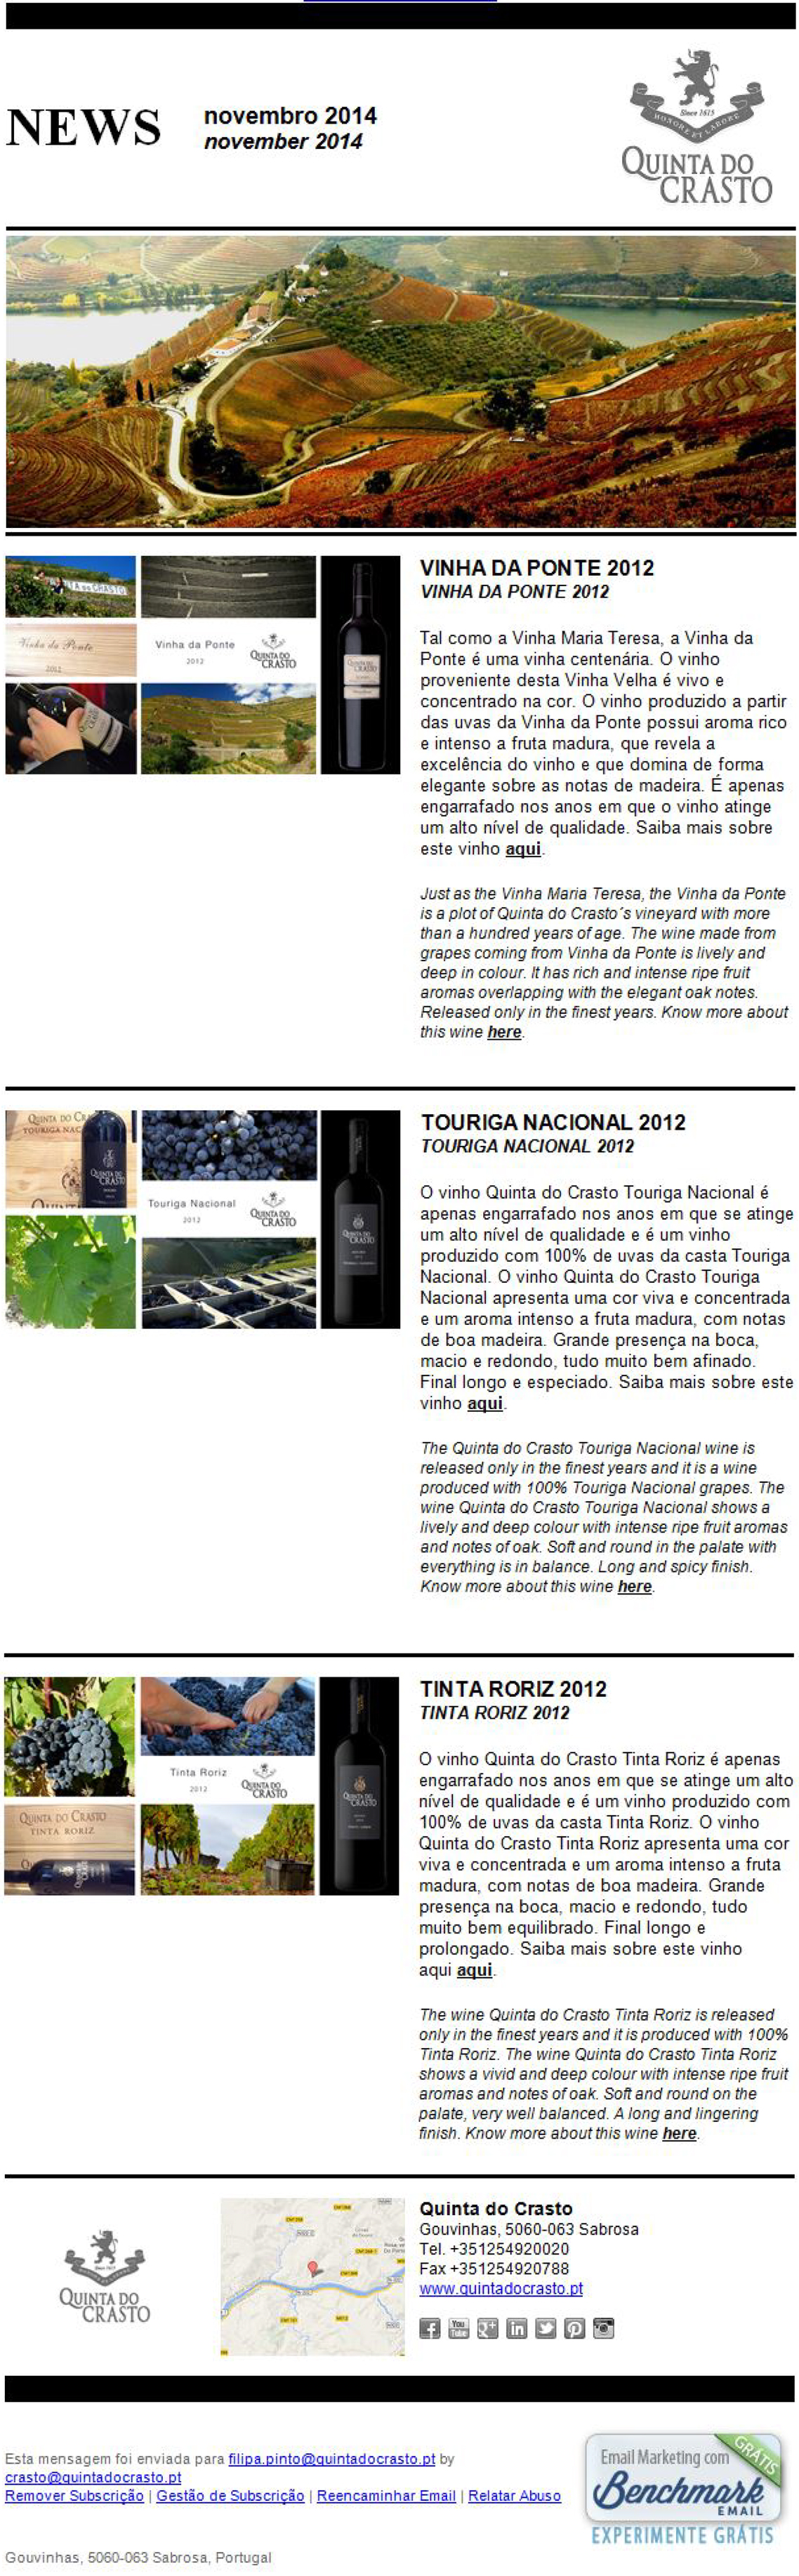 November 2014 - 3 New 2012 Vintages: Vinha da Ponte, Touriga Nacional and Tinta Roriz